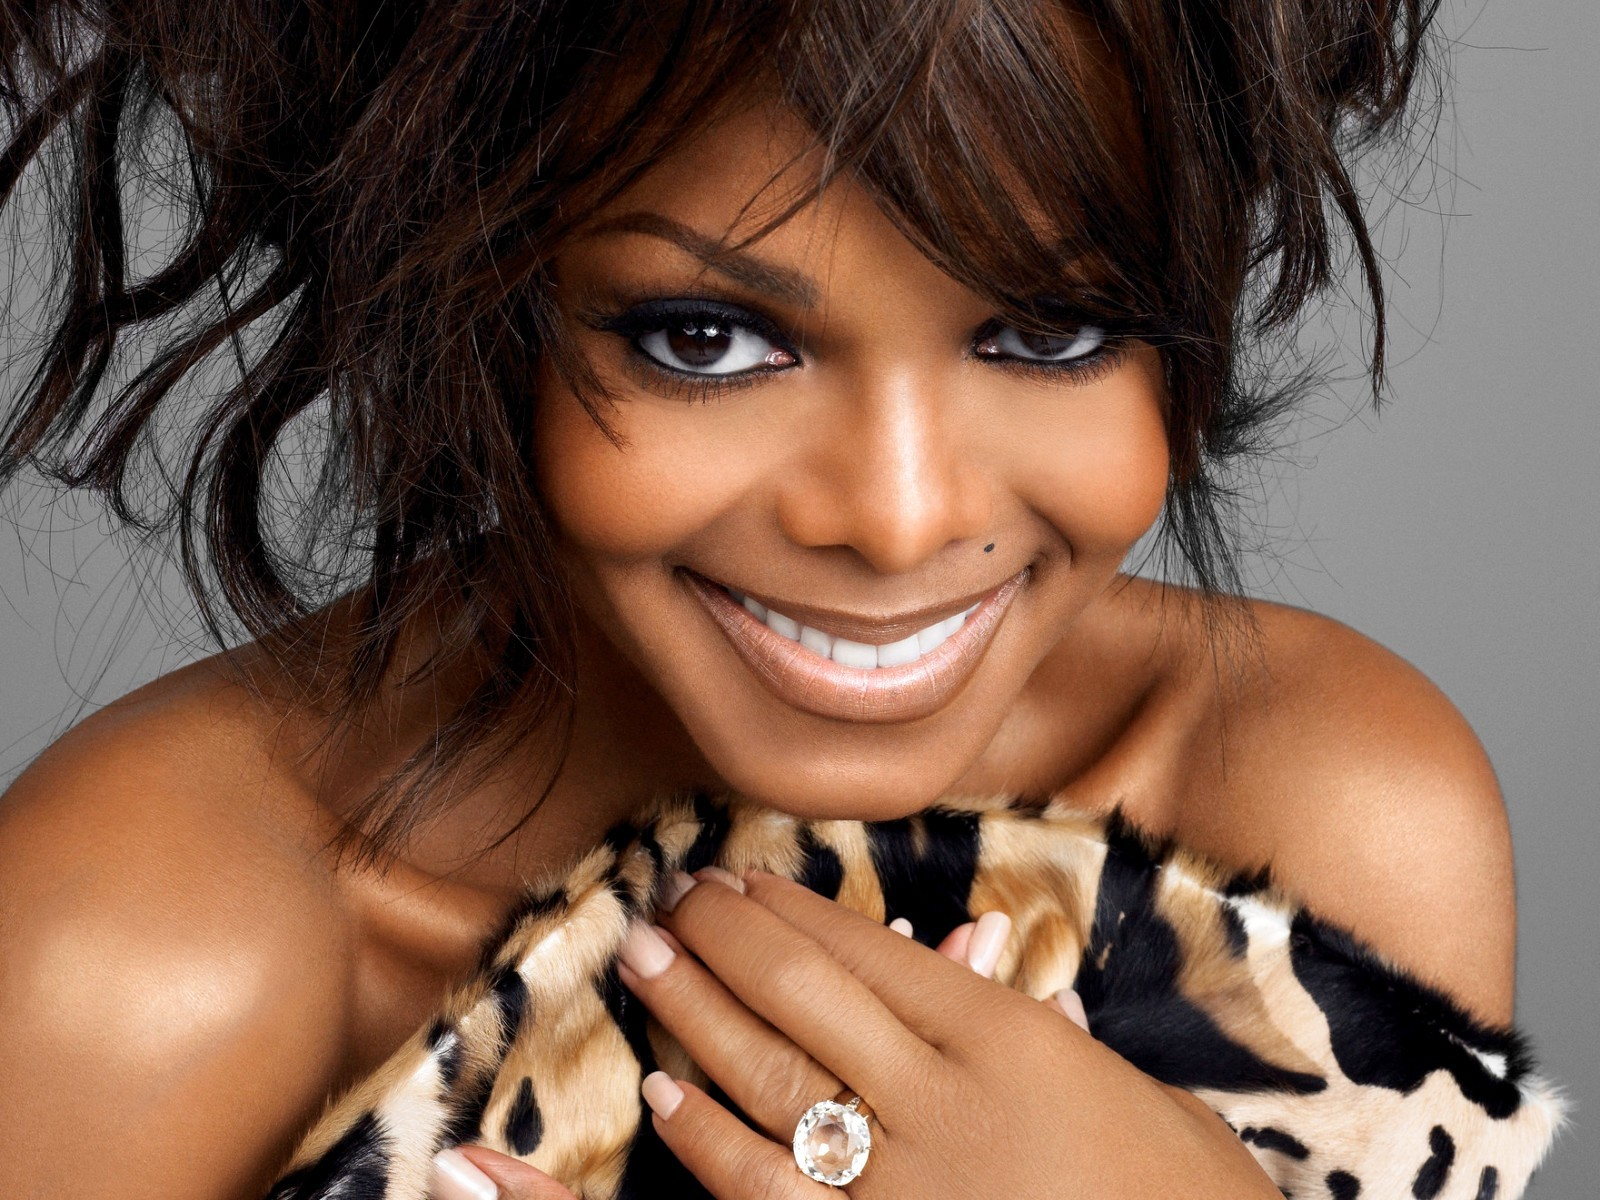 Janet jackson for sex